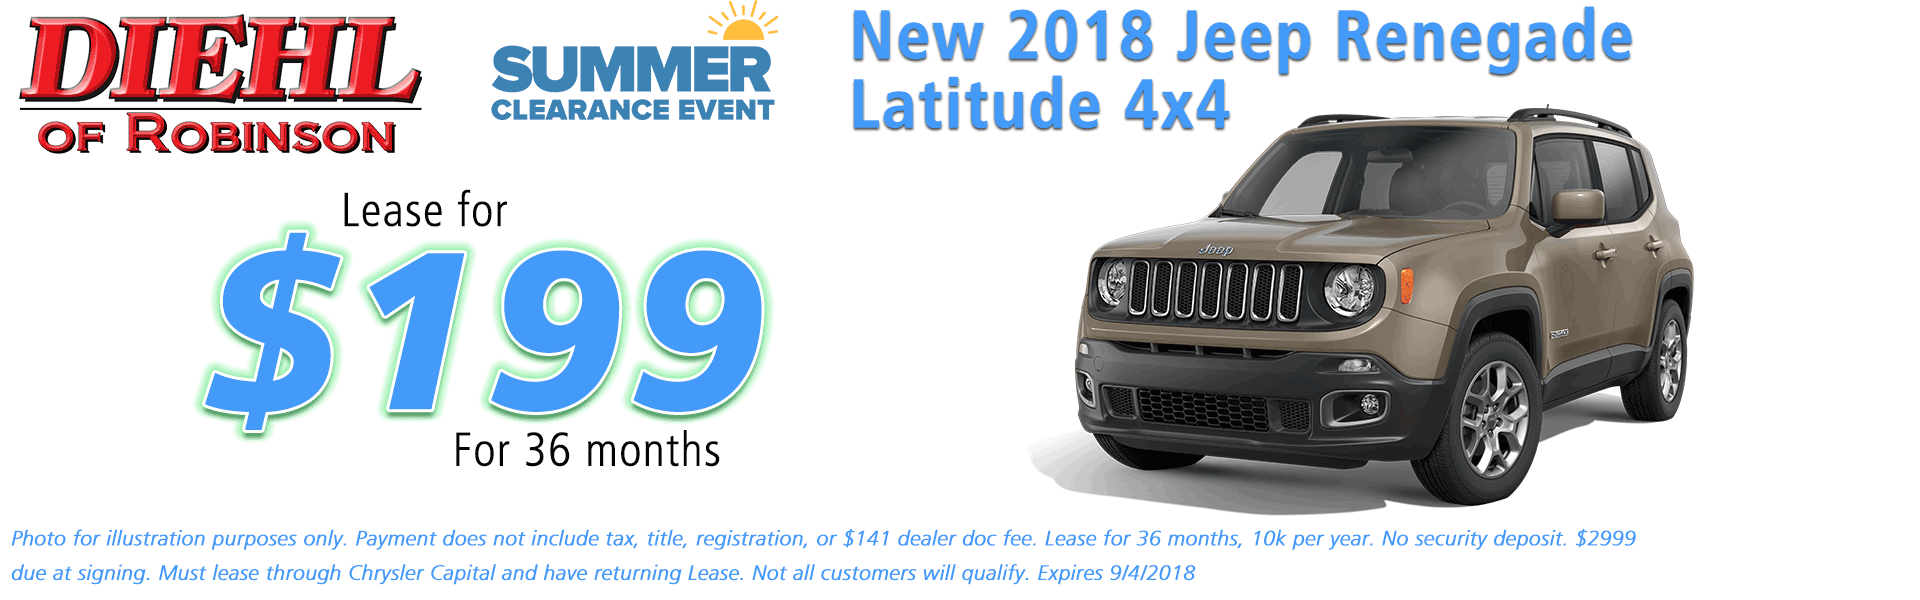 Diehl of Robinson, Robinson Twp, PA Chrysler Jeep Dodge Ram sales service parts and accessories NEW 2018 JEEP RENEGADE LATITUDE 4X4